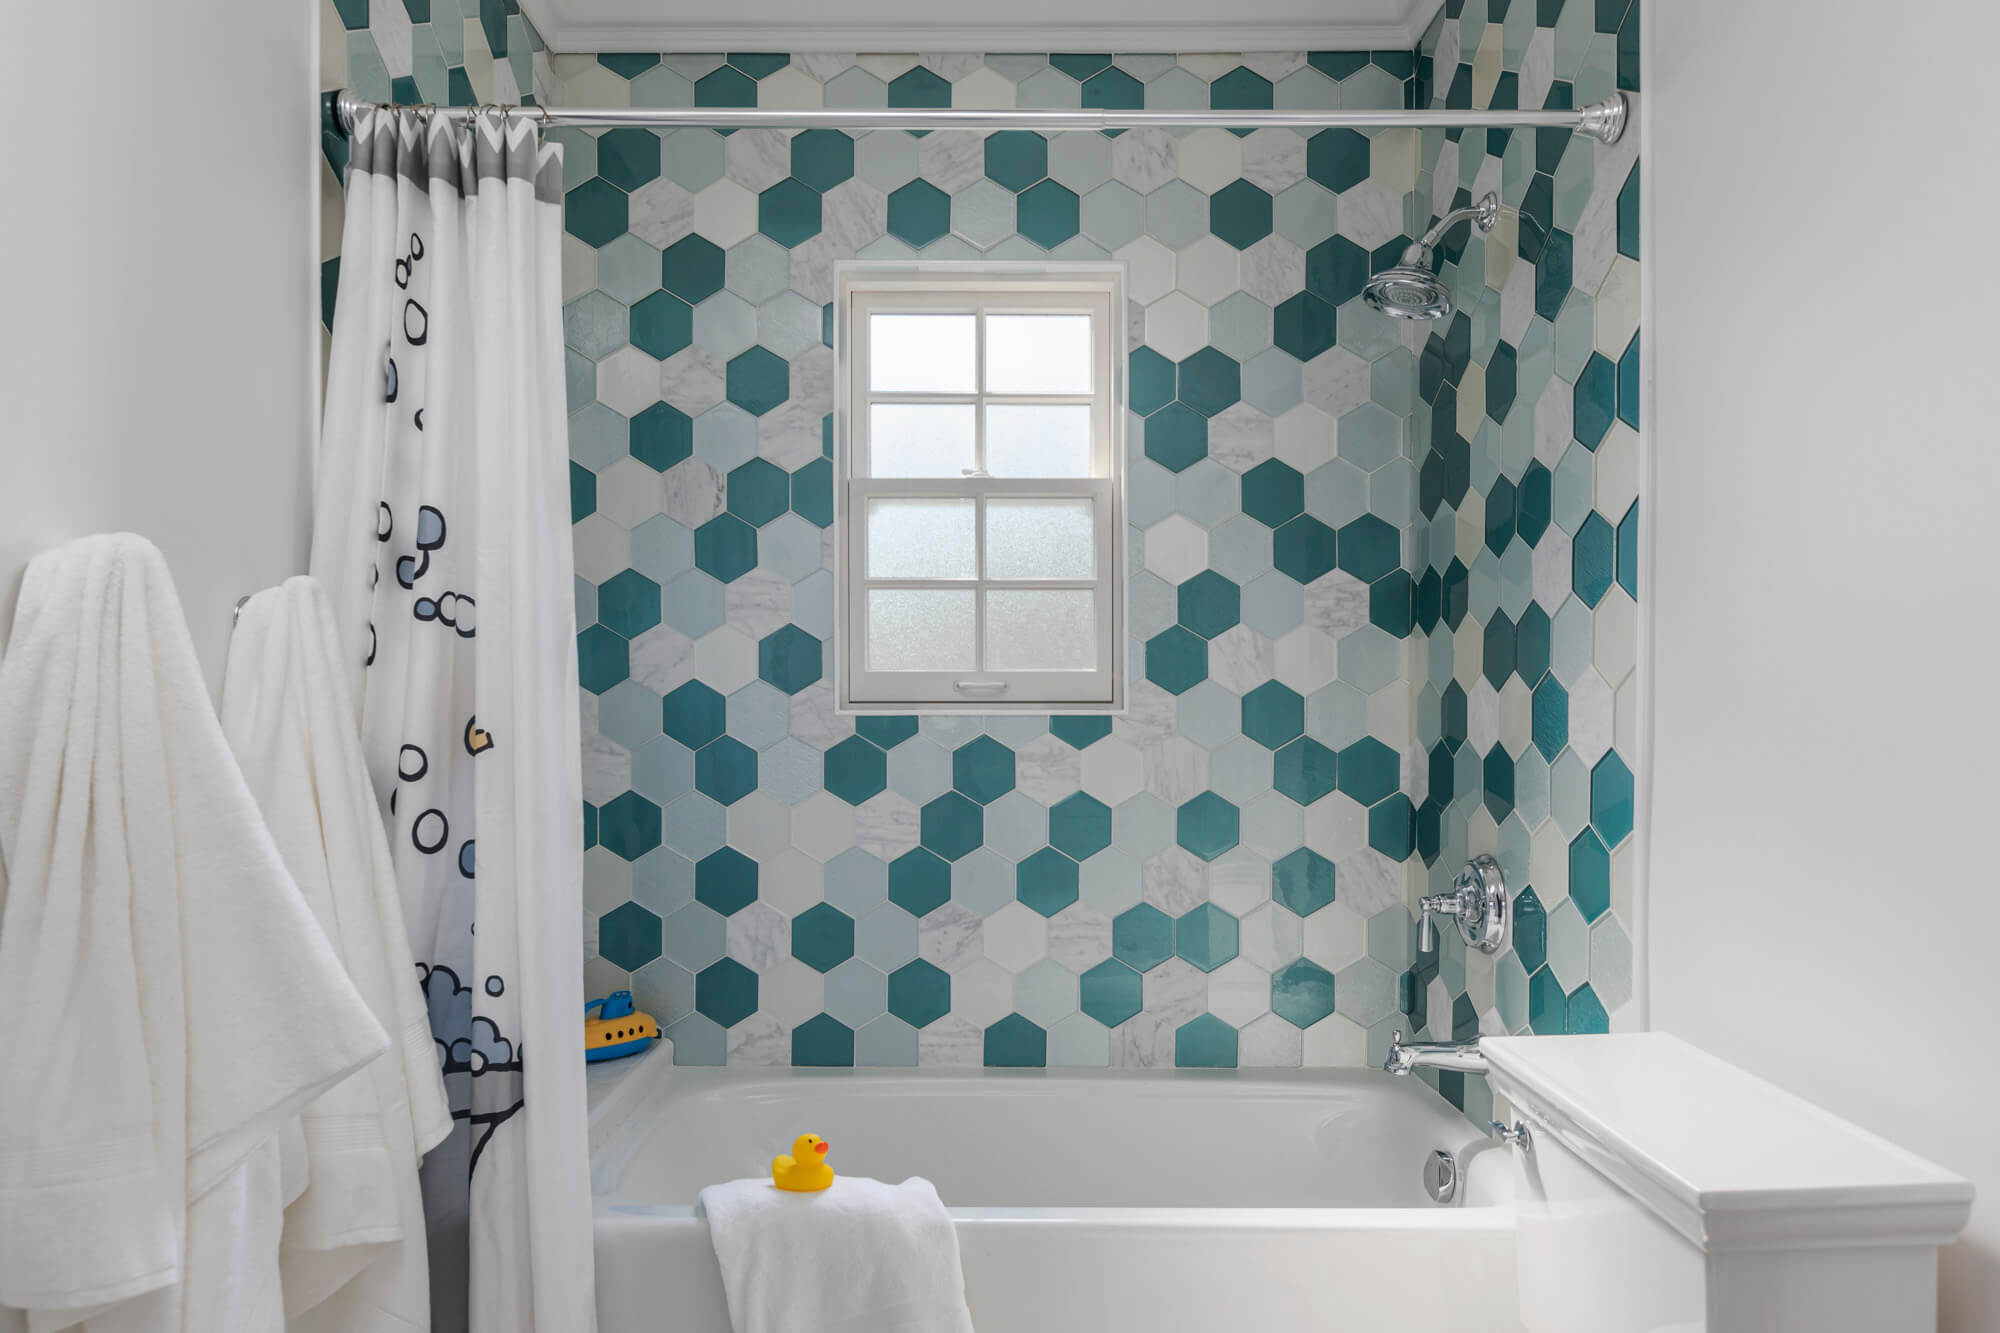 Bathroom with blue and white hexagon tile